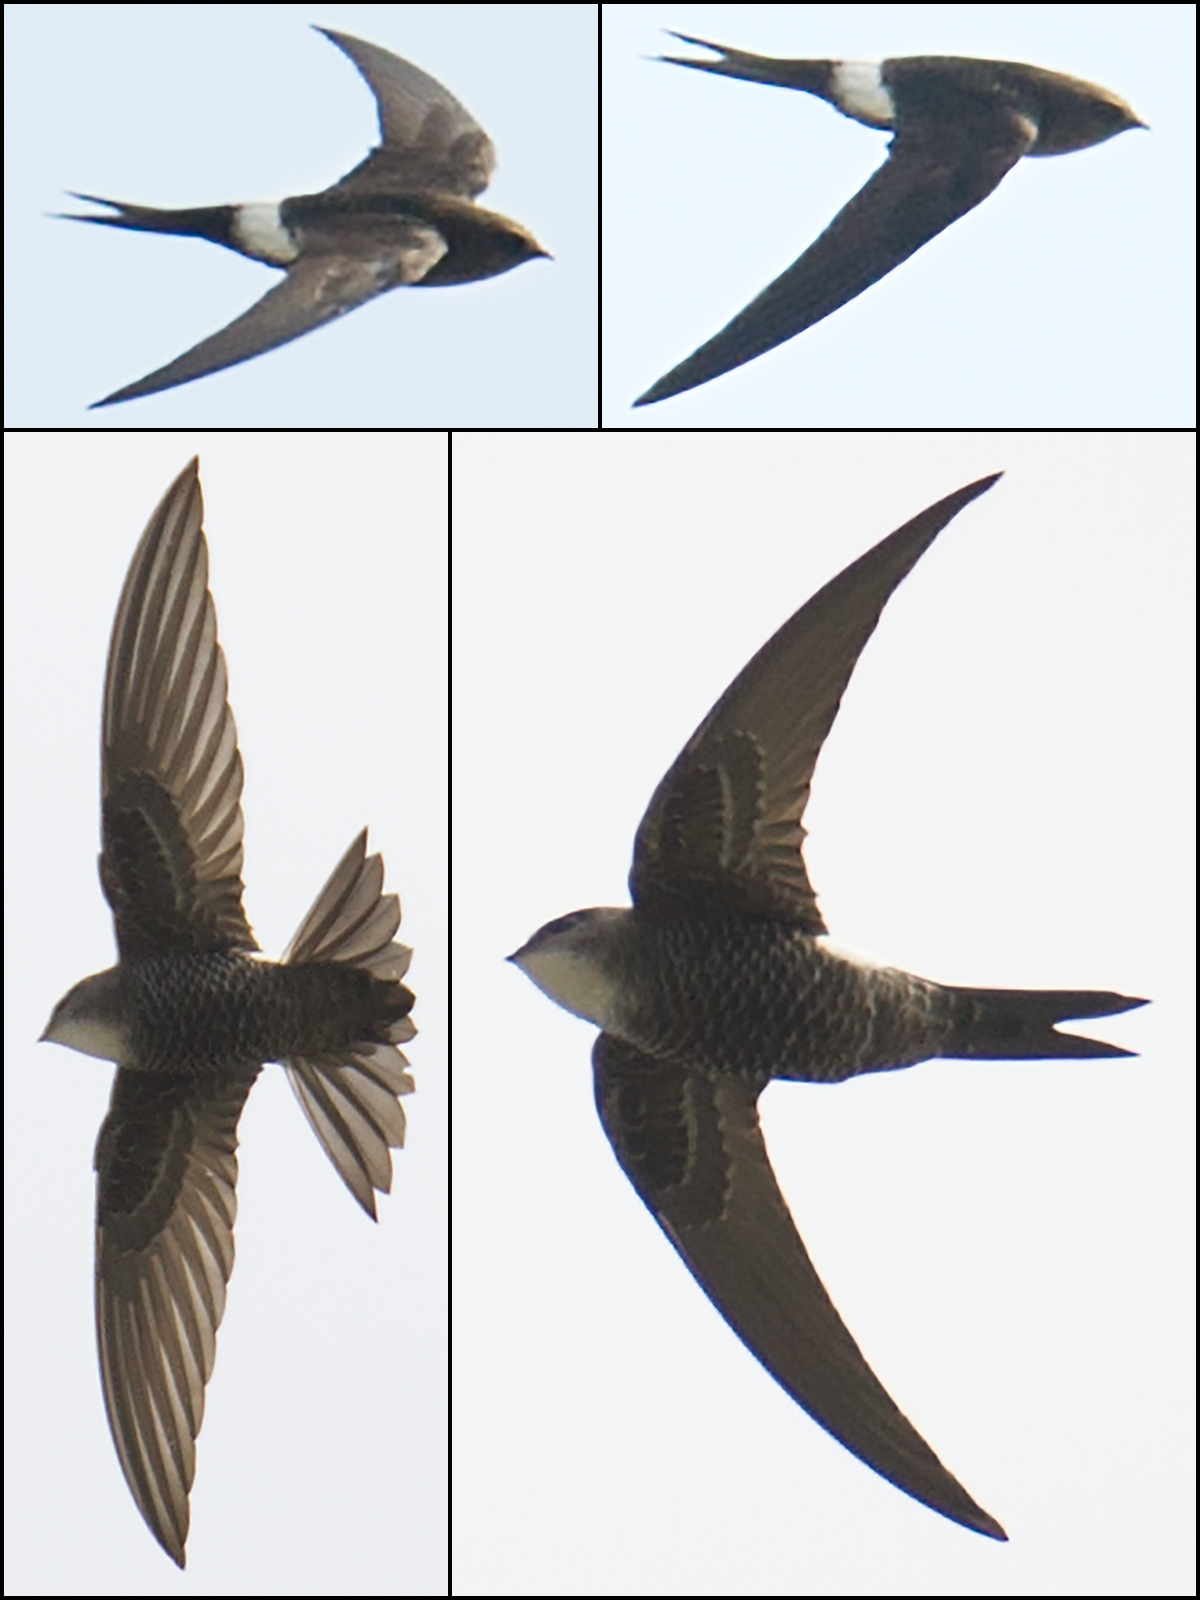 Pacific Swift, Nanhui, 27 April 2017. In Shanghai, Apus pacificus is an uncommon passage migrant. (Craig Brelsford)